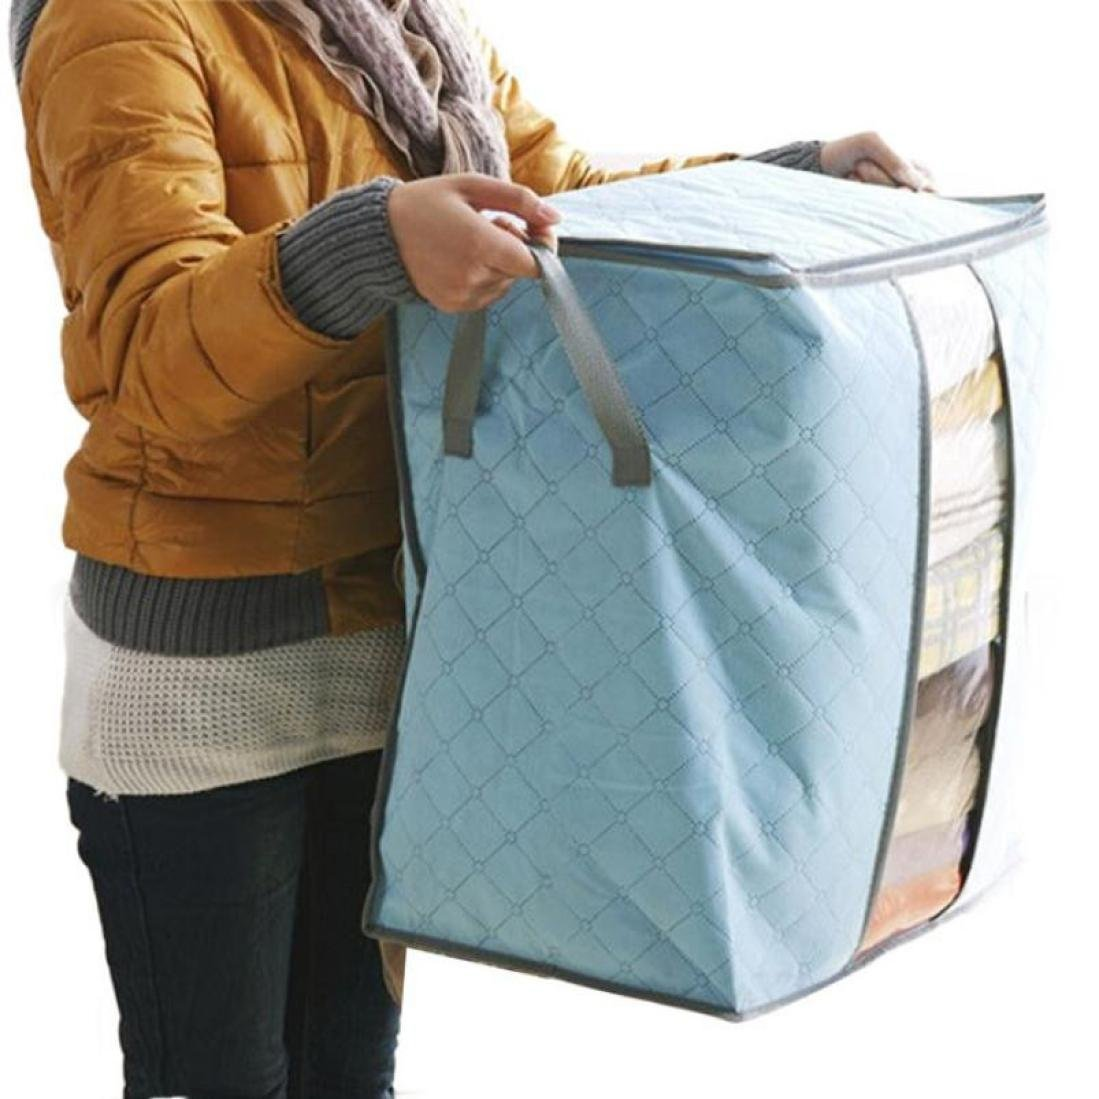 Jaminy 48X30X50 CM Non-Woven Receive Clothes Quilt Bag Large Luggage Organizer Storage Wardrobe Clothing Pouch Box (Sky Blue)